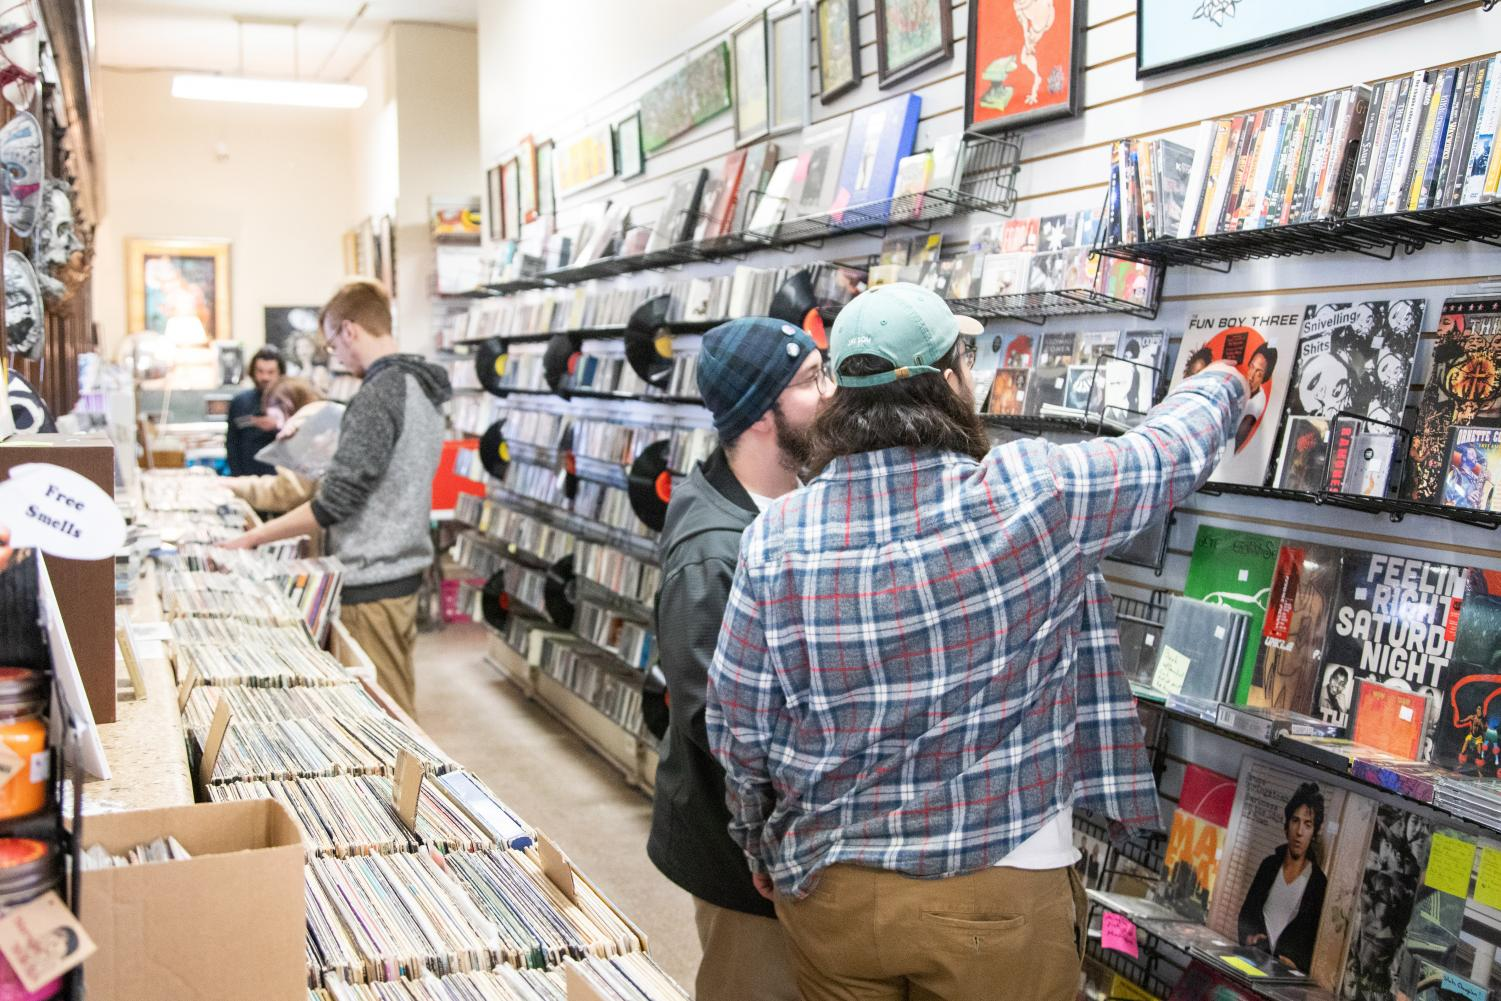 Patrons of Exile on Main shop for vinyl records for Record Store Day on Saturday. The holiday is celebrated on the third Saturday of April.